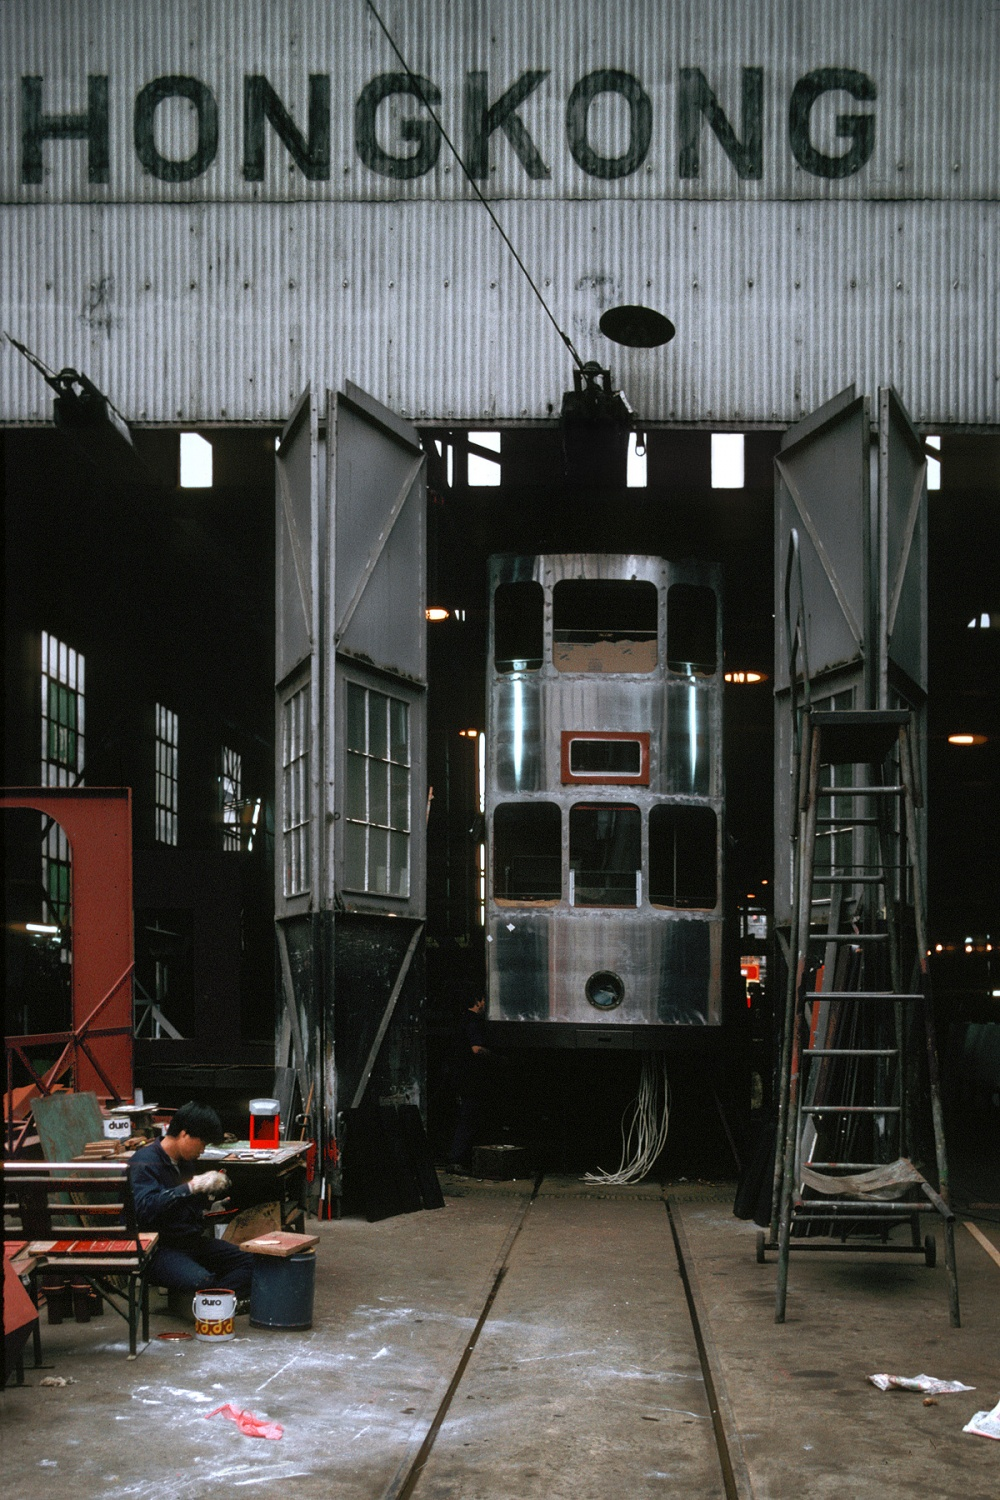 tramworkshop Tram Depot, 